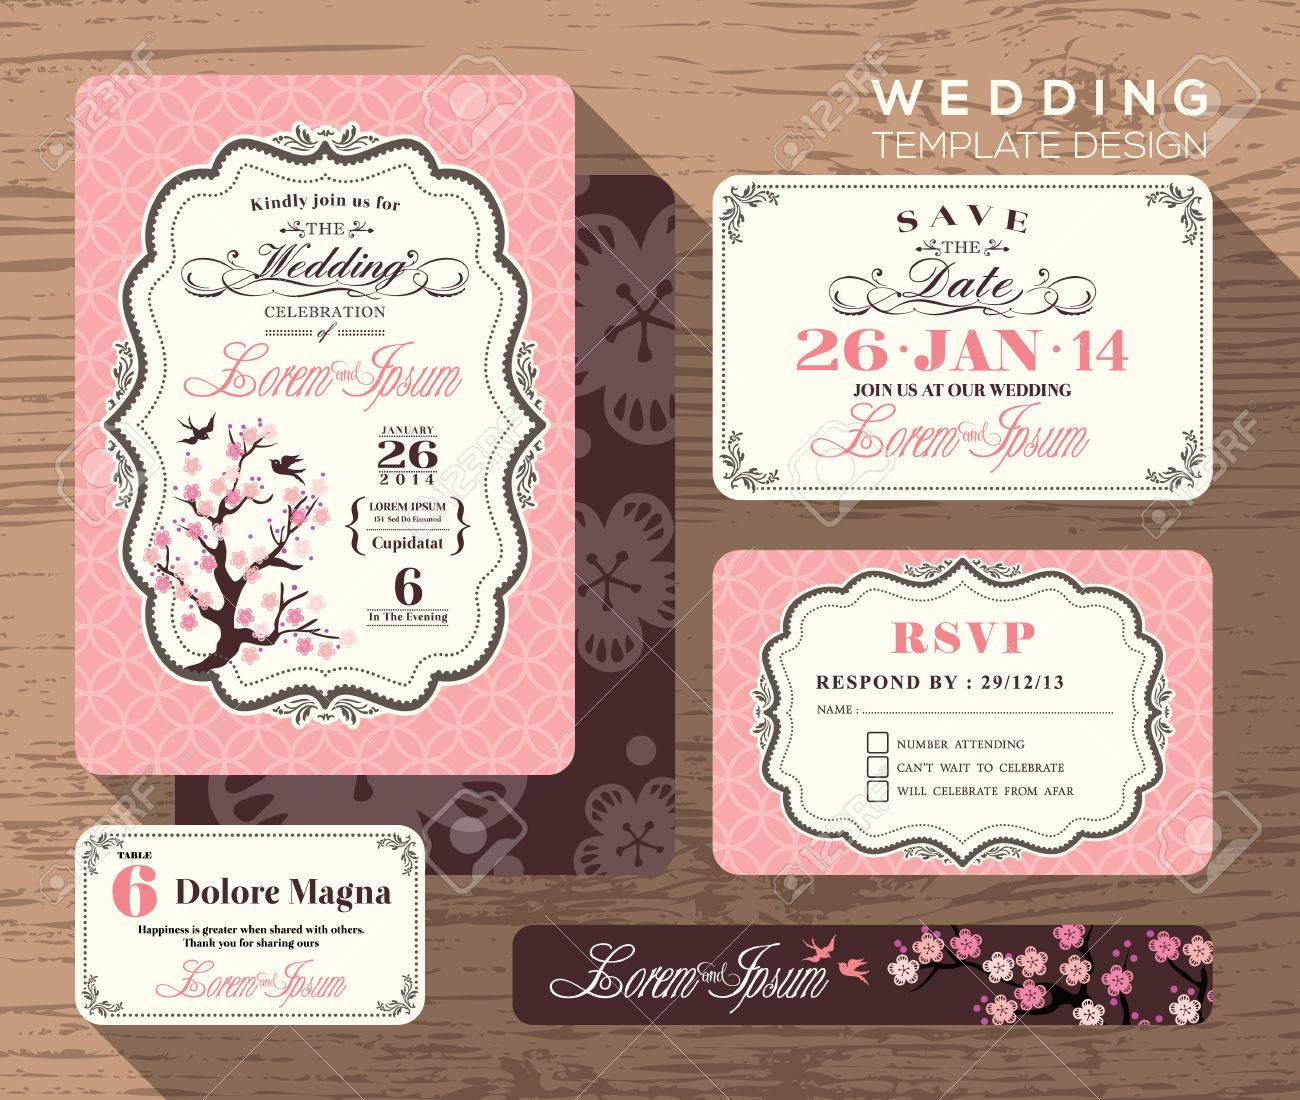 Vintage wedding invitation set design Template Vector place card response card save the date card - 35322381